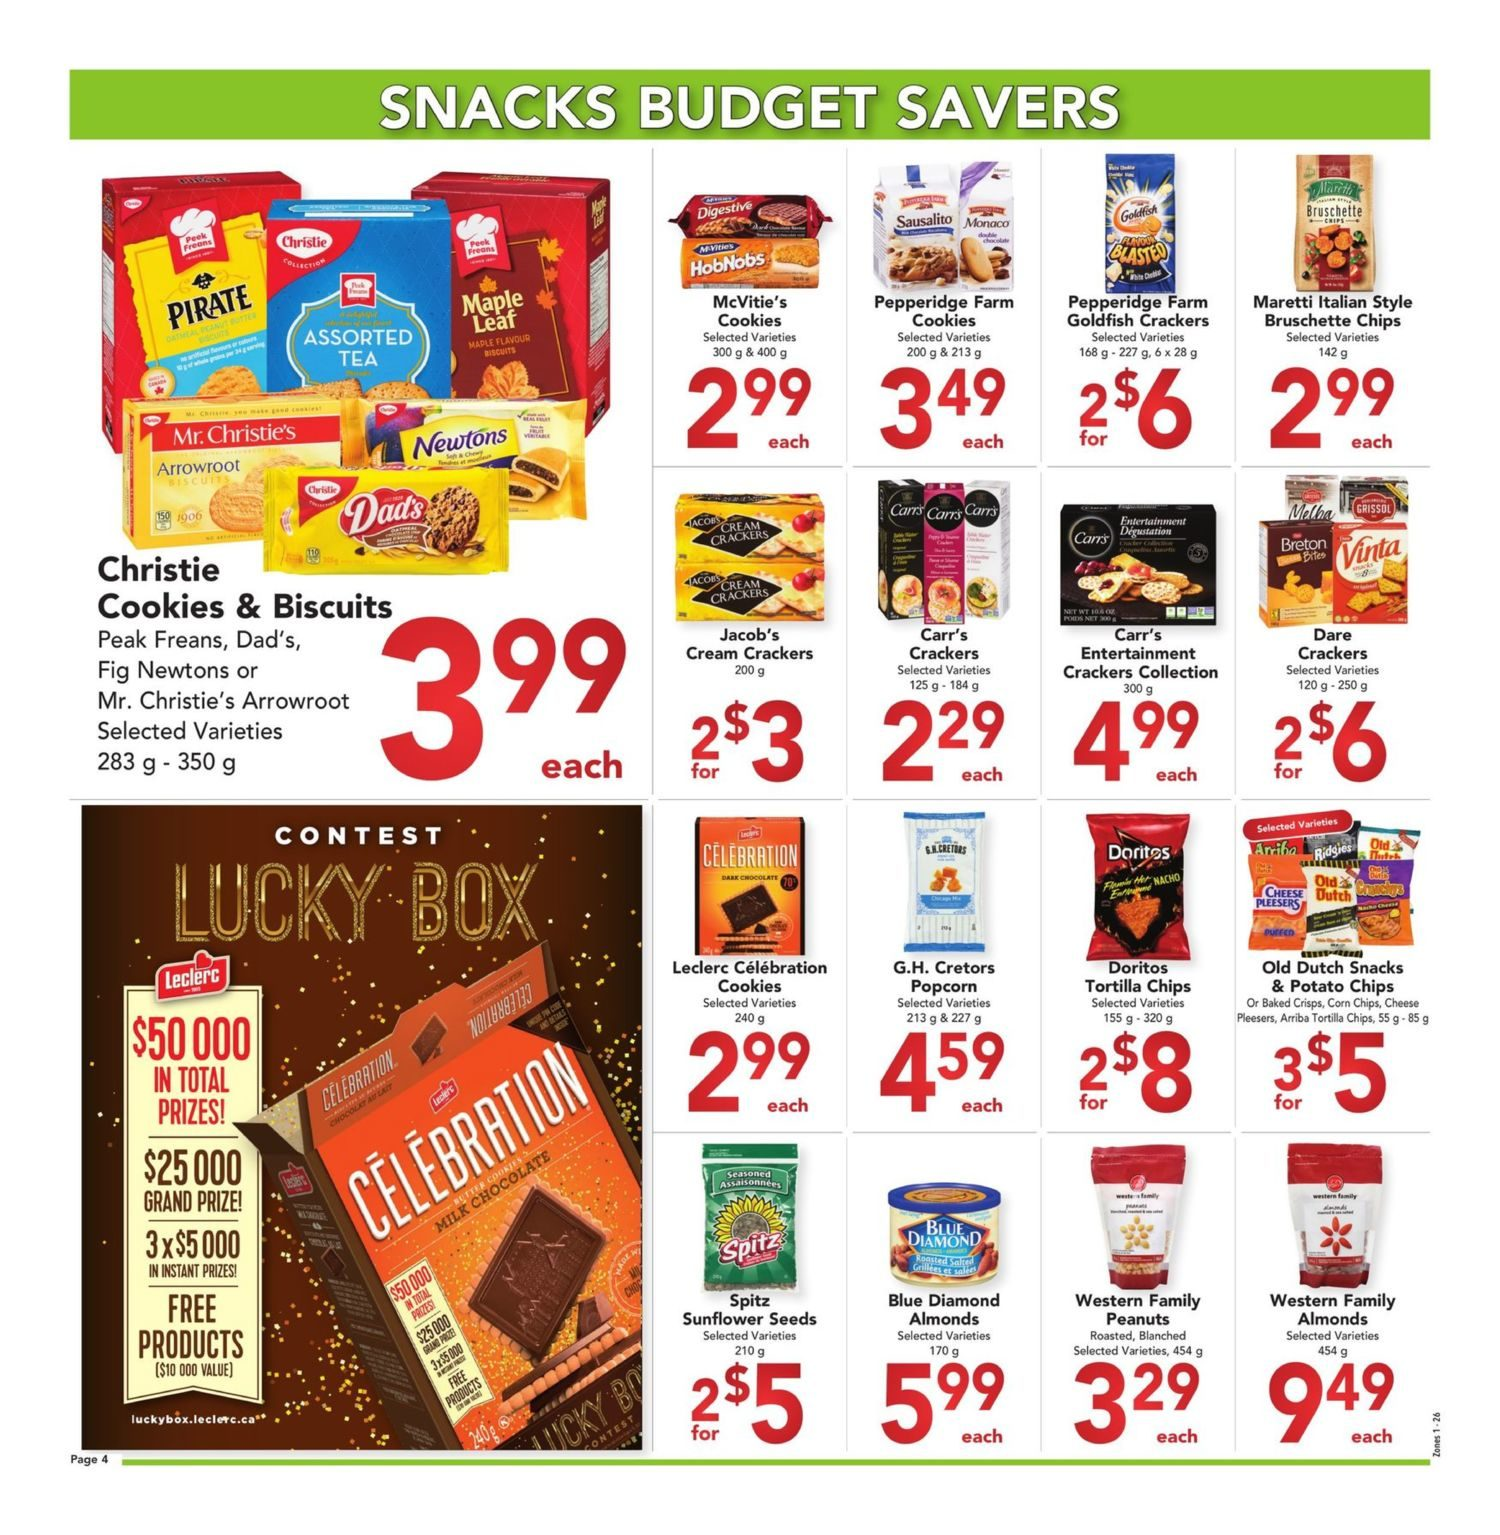 Buy-Low Foods - Budget Savers - Page 4